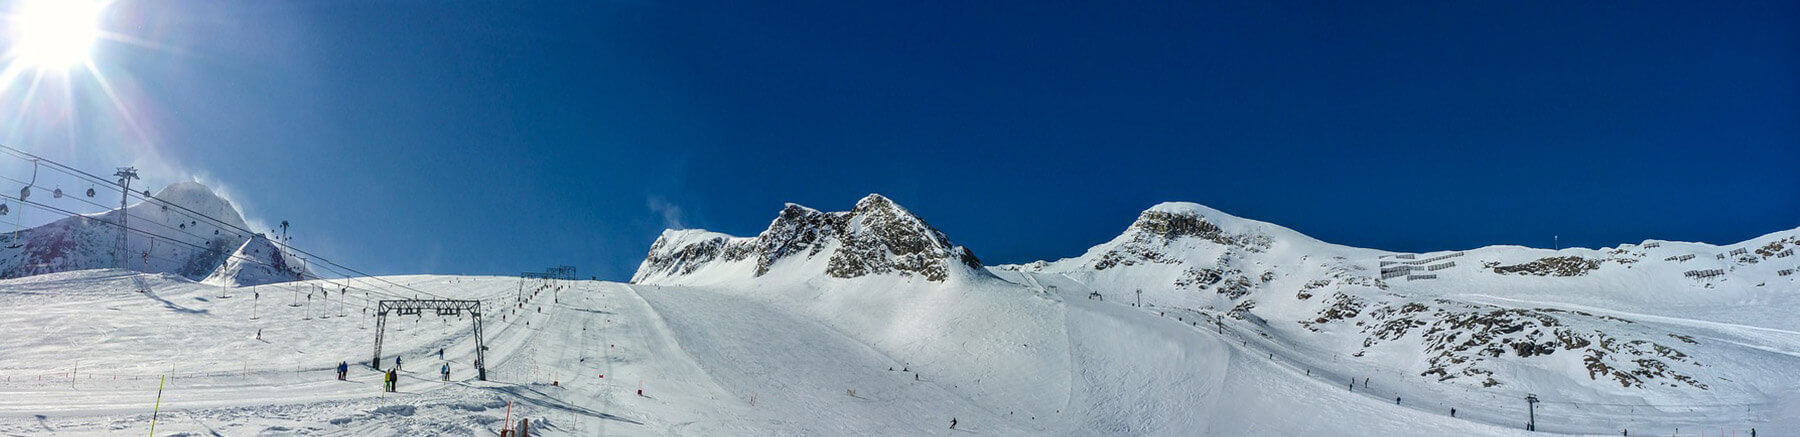 Ski resort in the Austrian Alps with a beautiful blue sky and plenty of snow